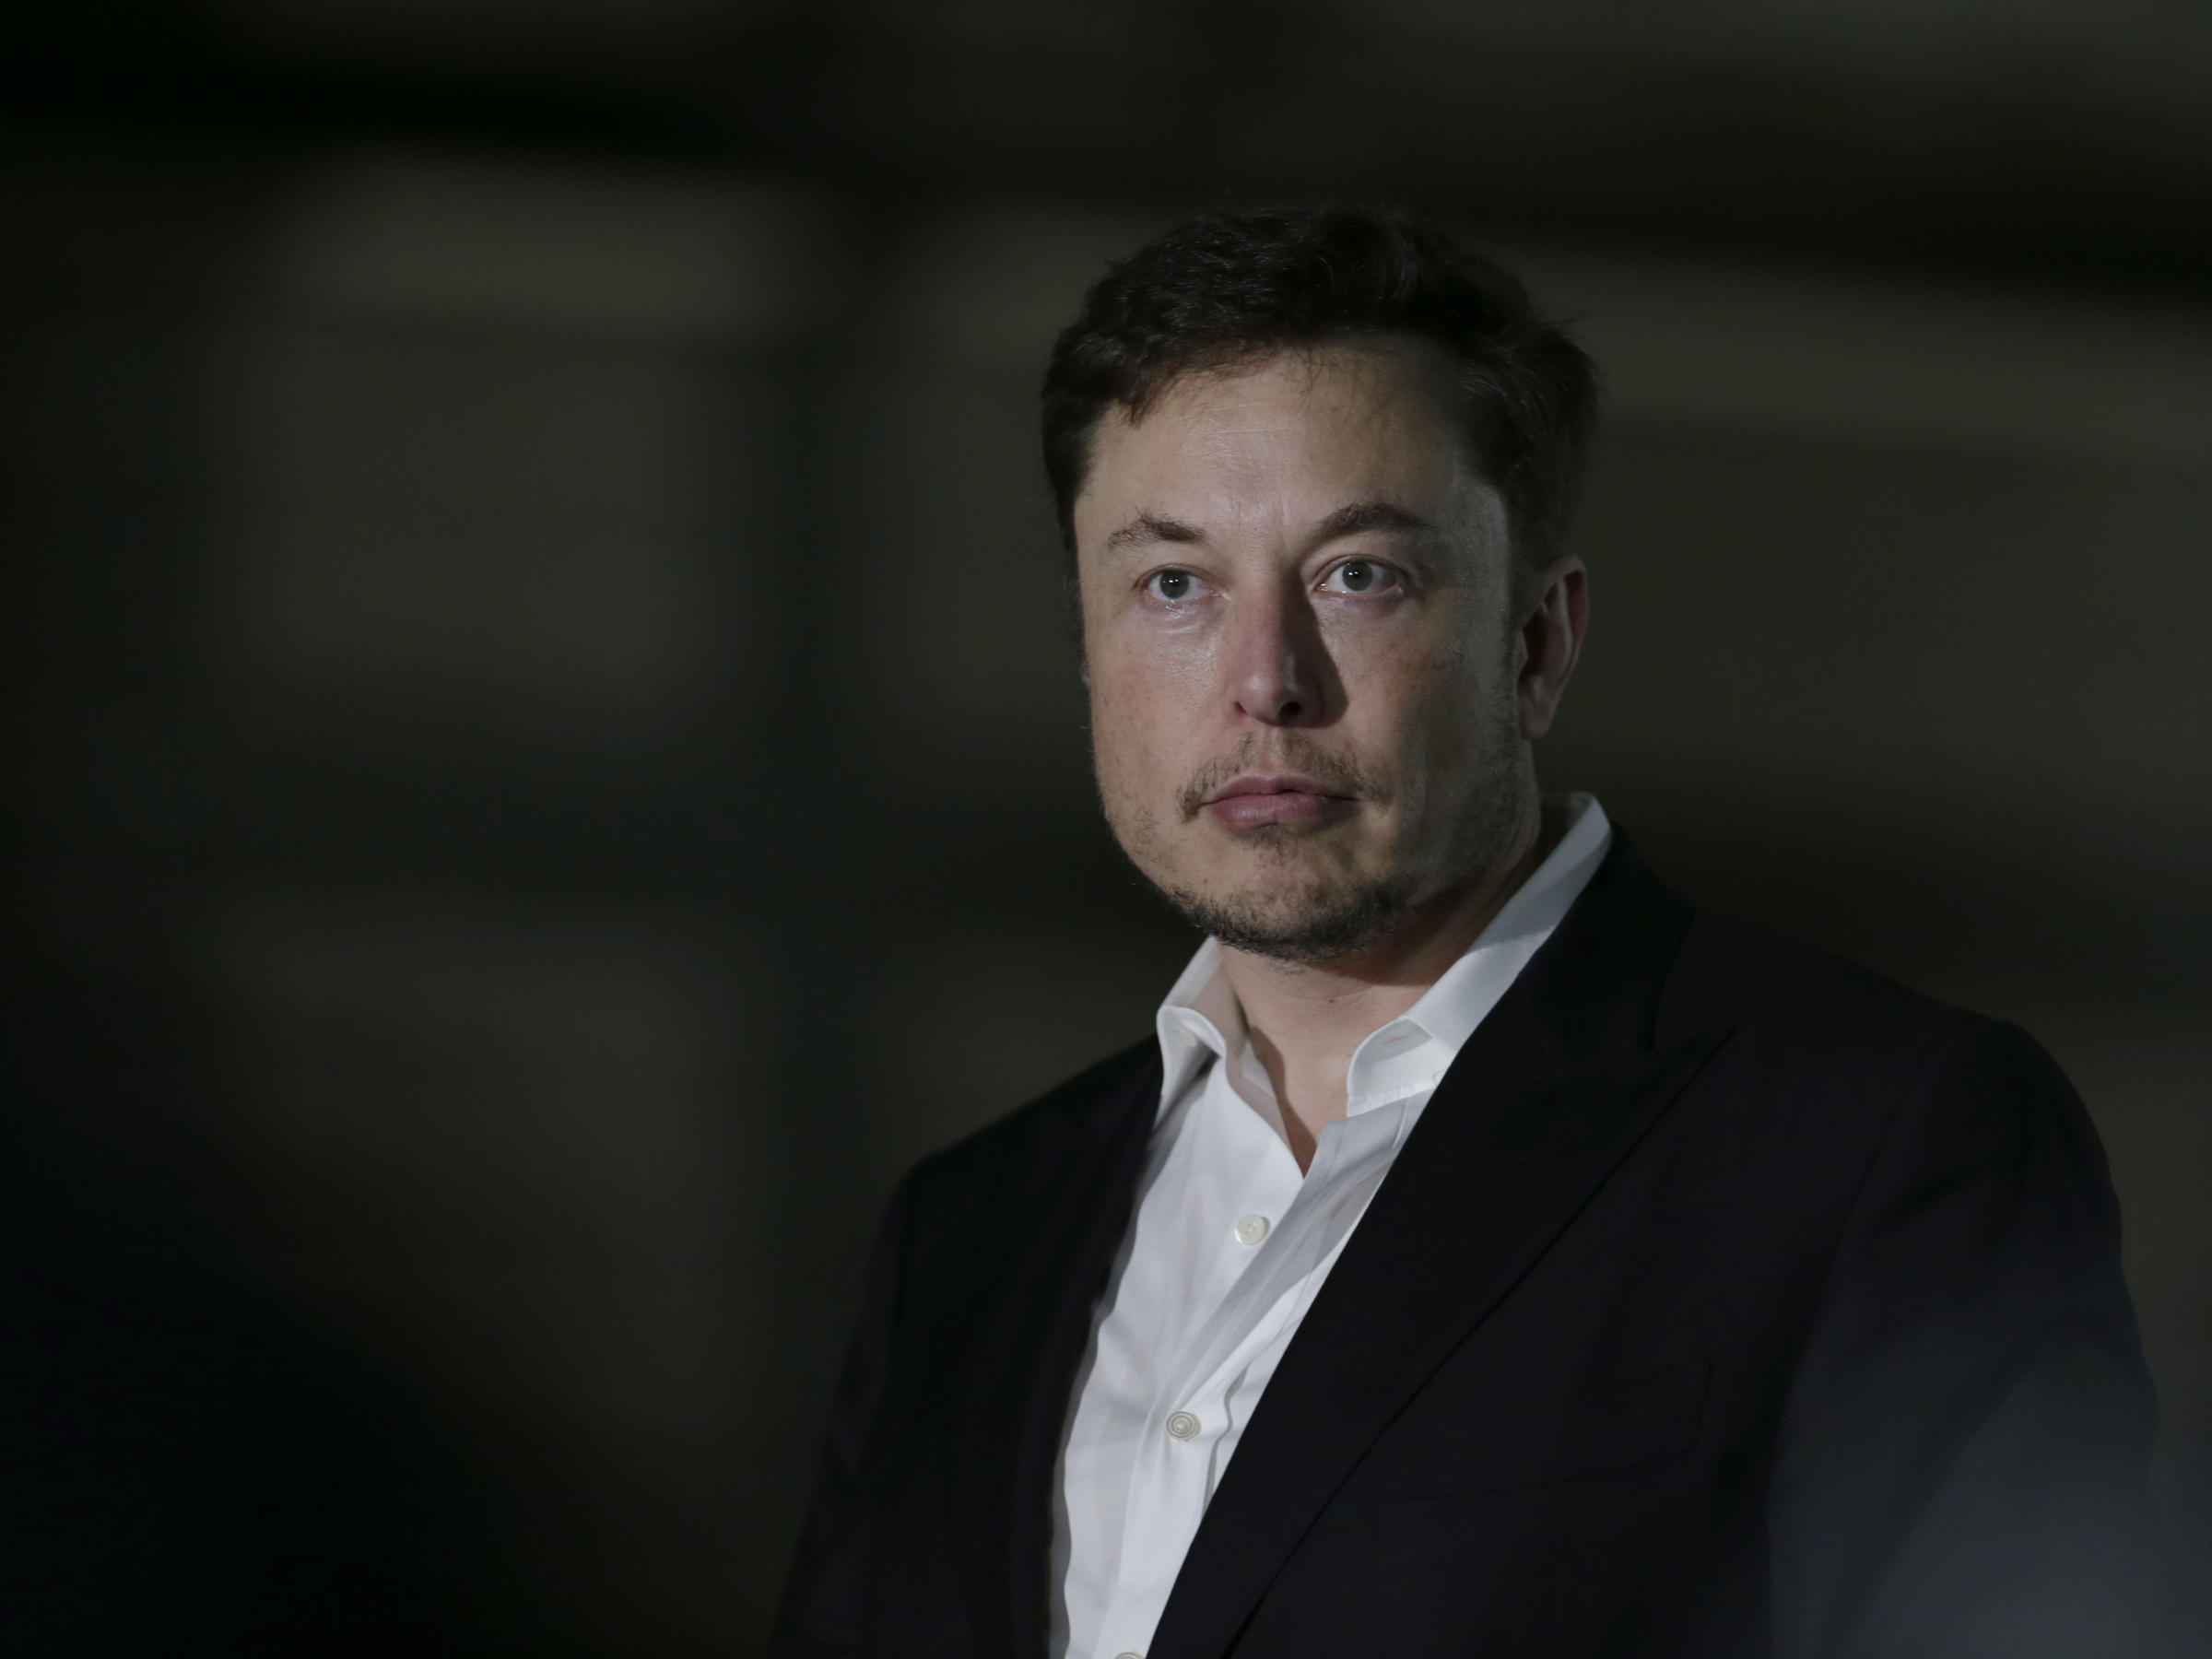 Tesla stocks tumbled this week after CEO Elon Musk appeared to smoke pot in a podcast. In addition two top executives said Friday they were leaving the company